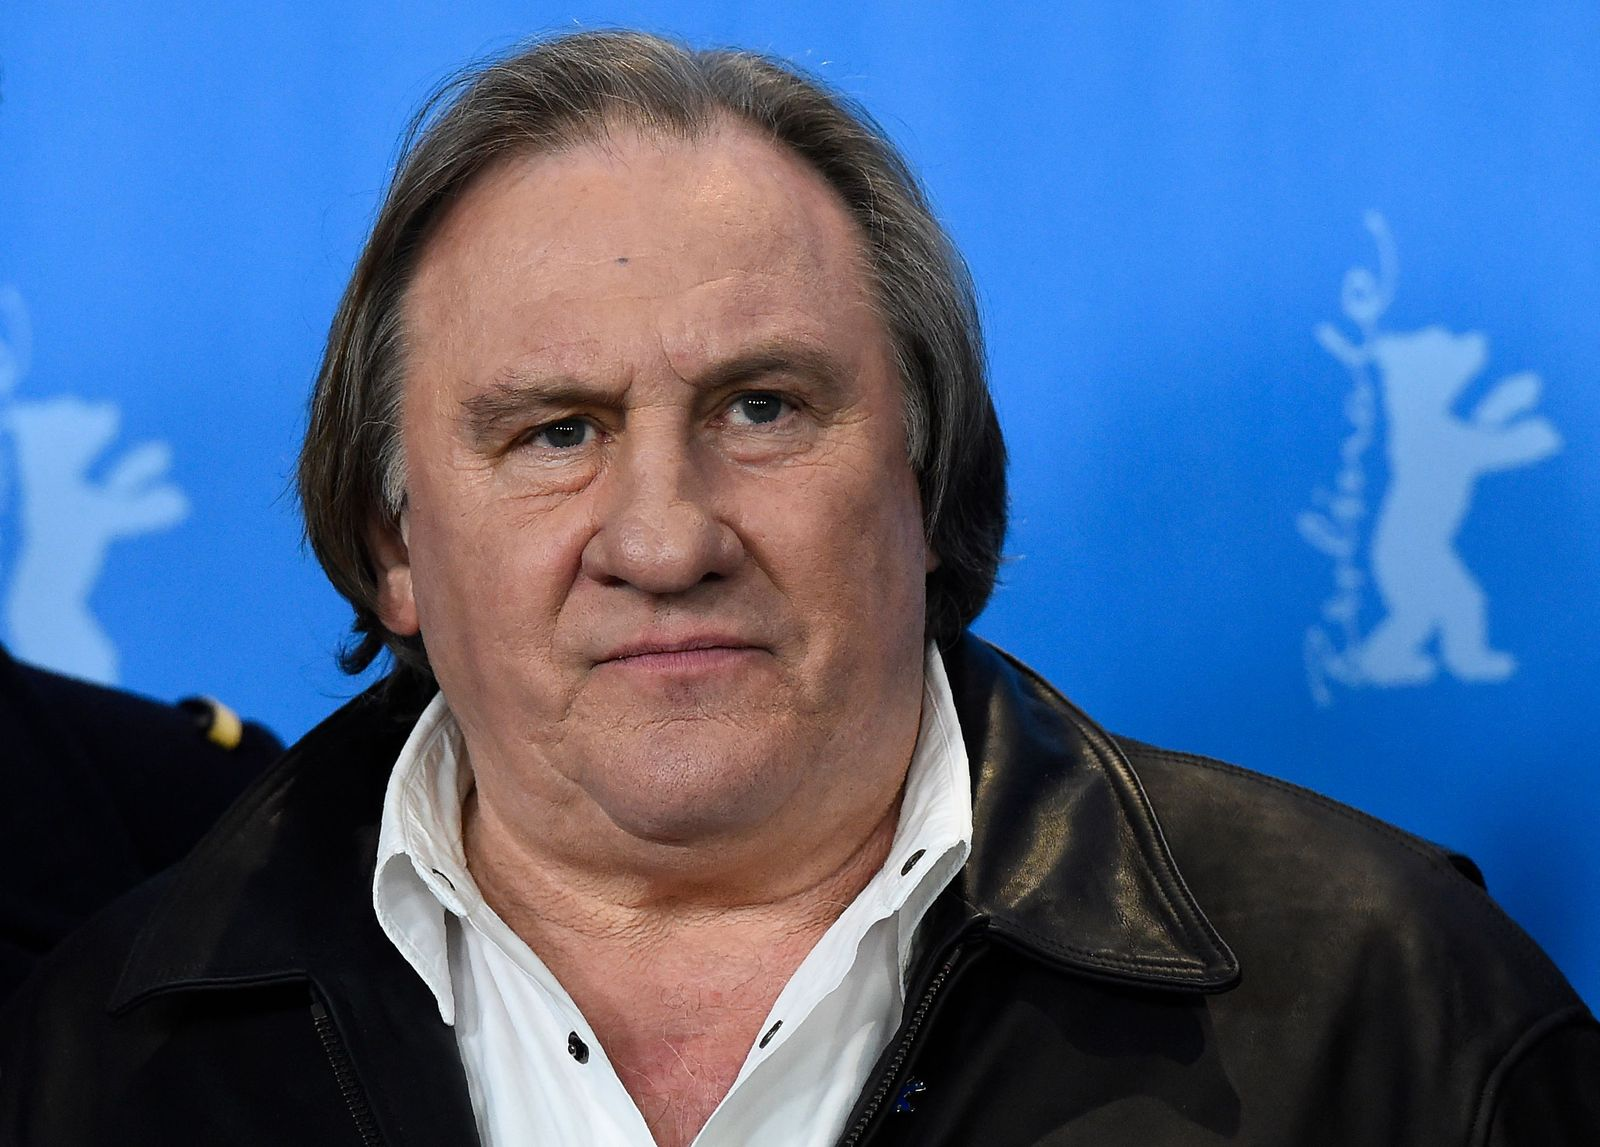 FILES-FRANCE-JUSTICE-FILM-DEPARDIEU